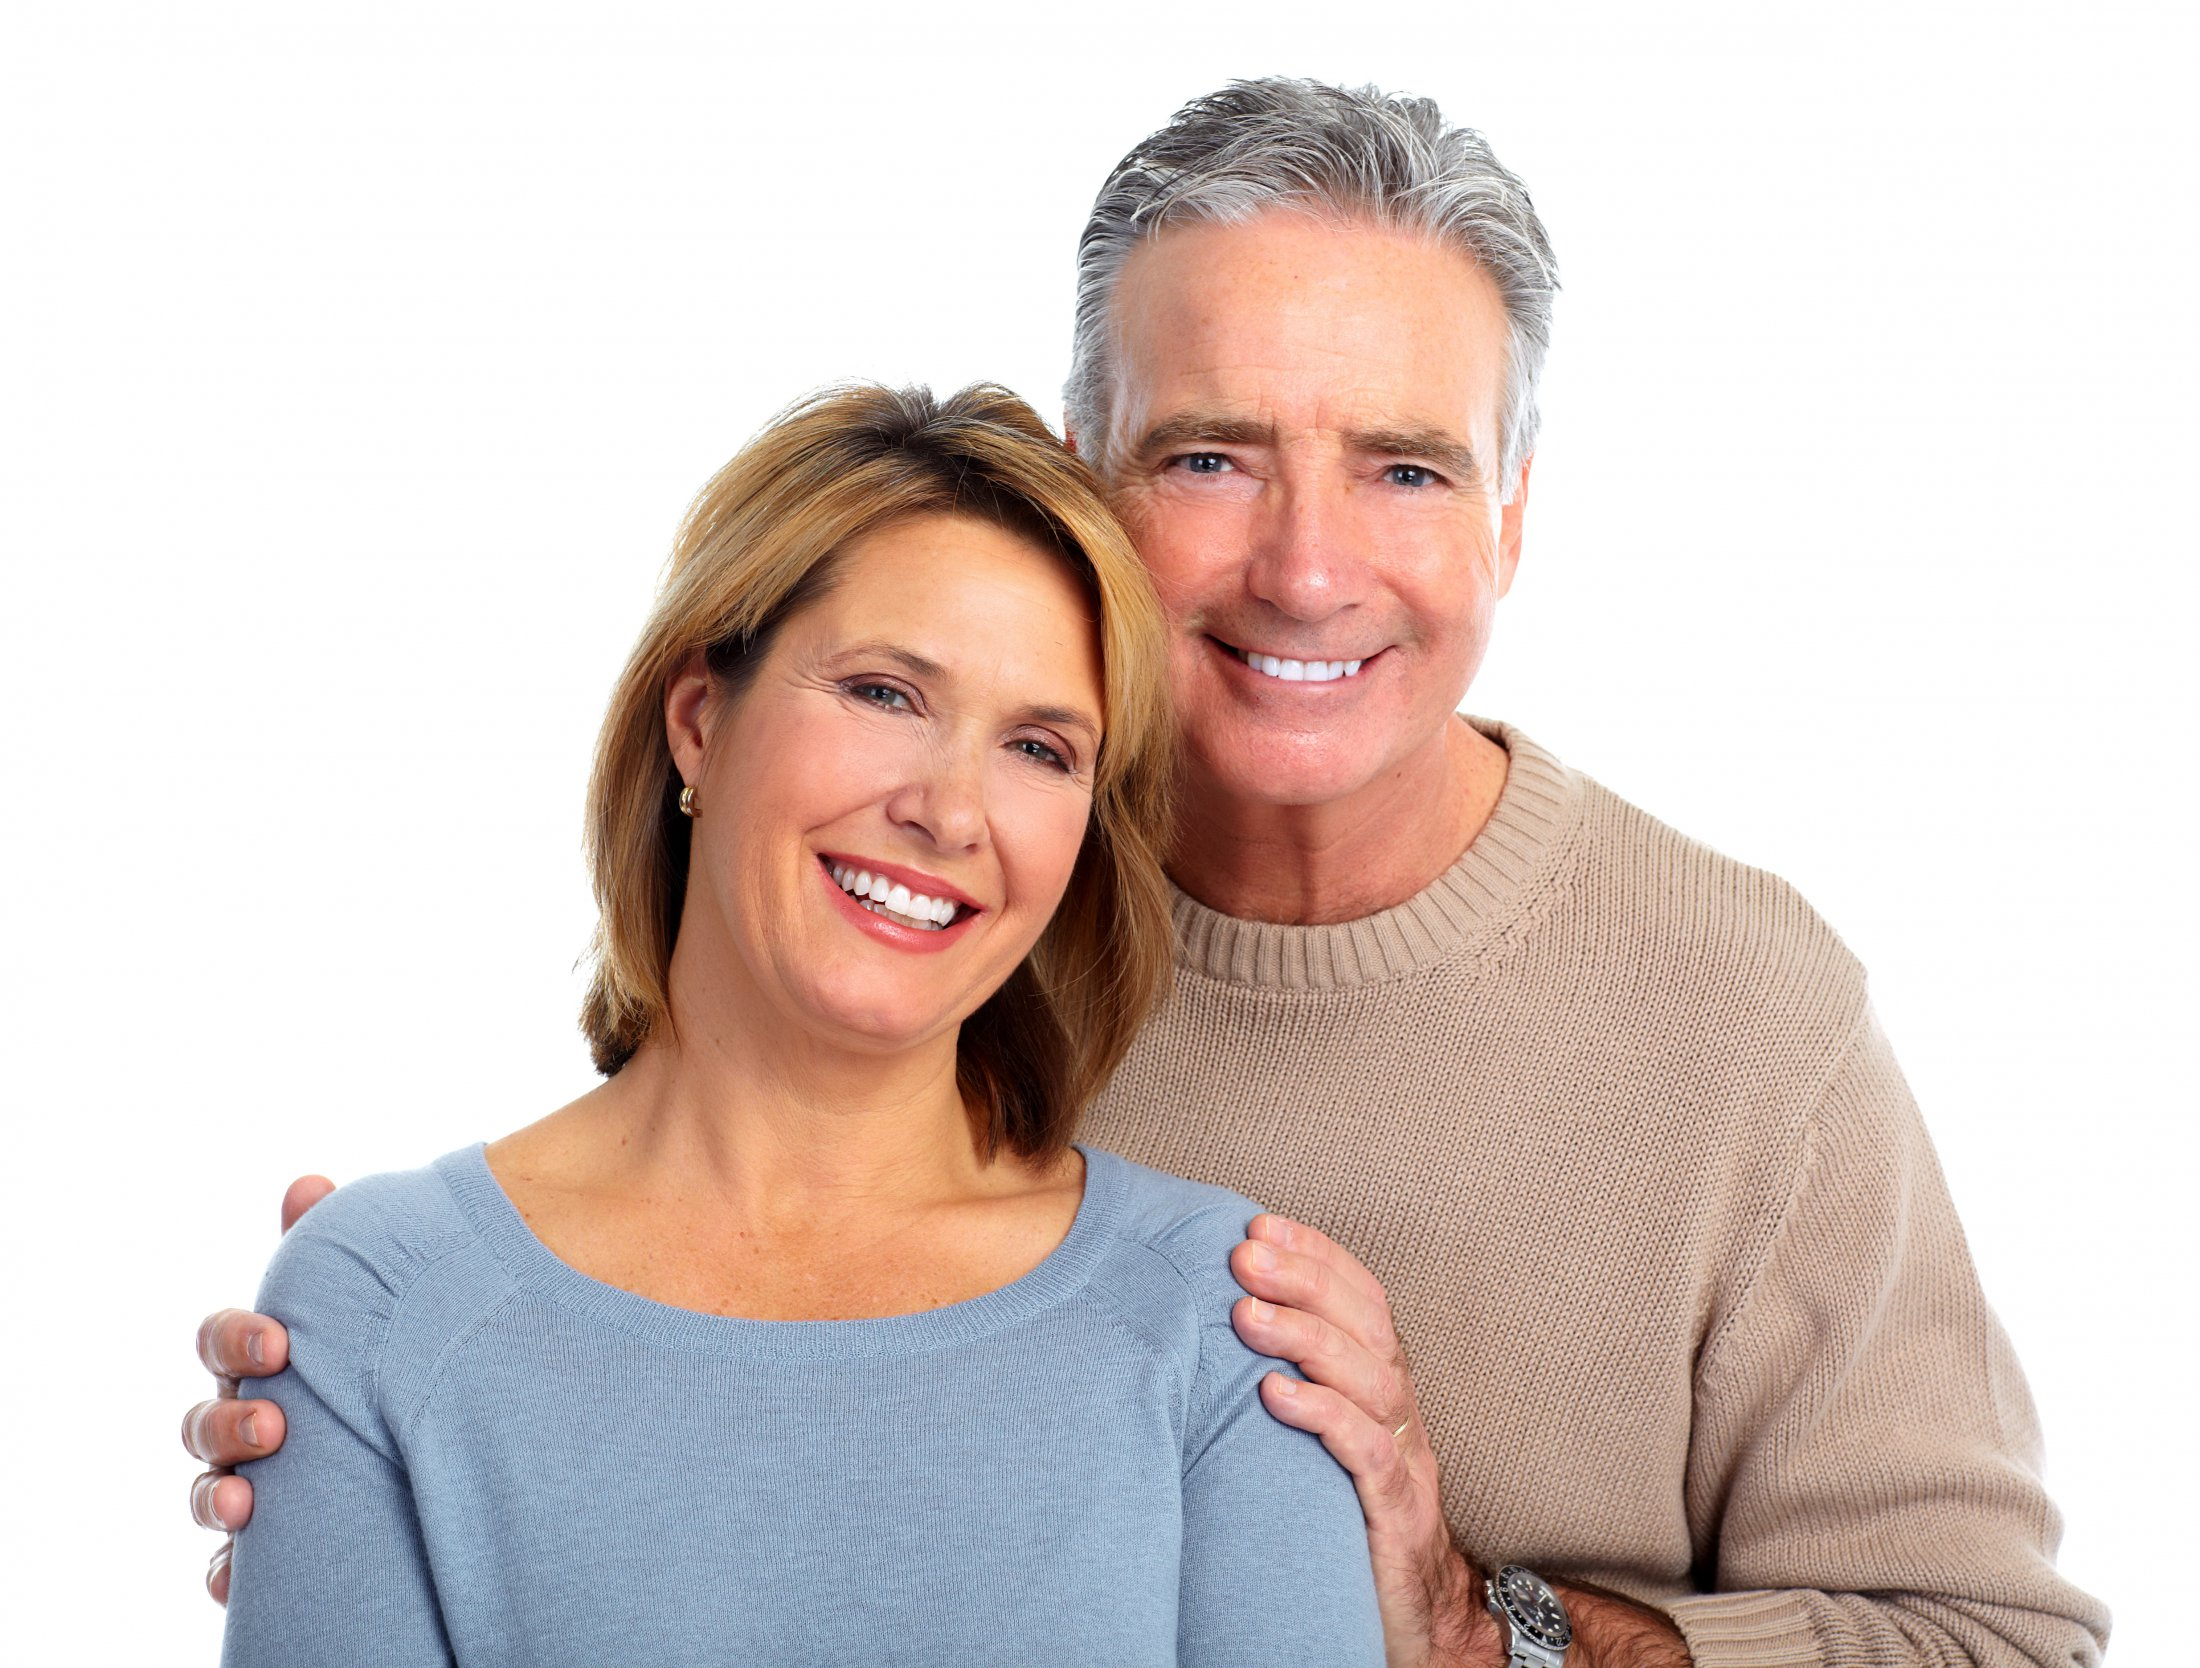 Health benefits of smiling – Snap in Dentures can help you with that!